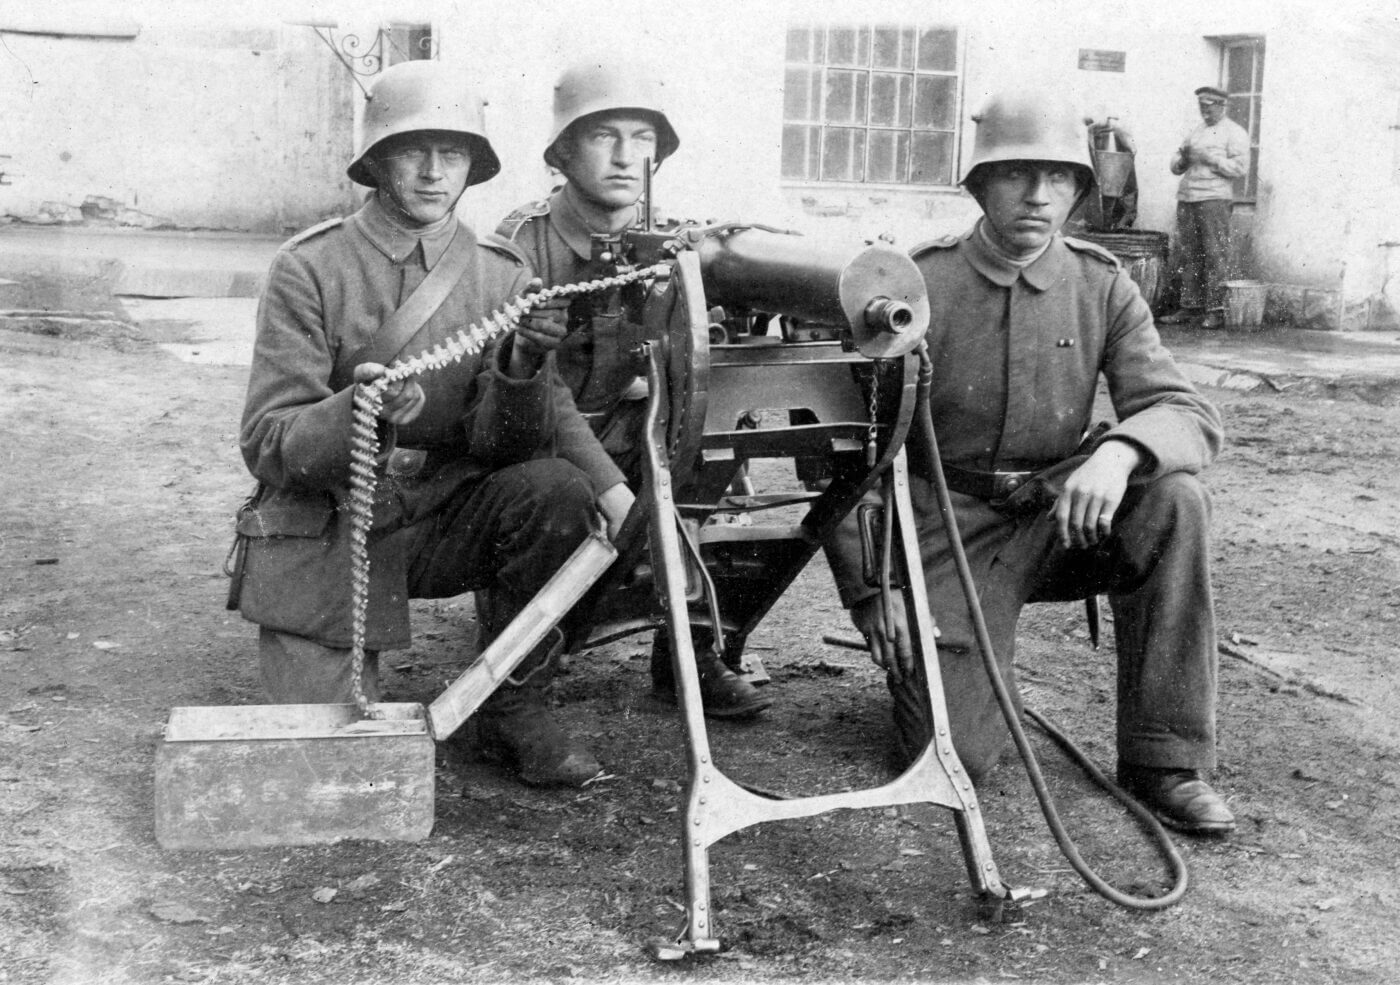 German troops training with the MG08